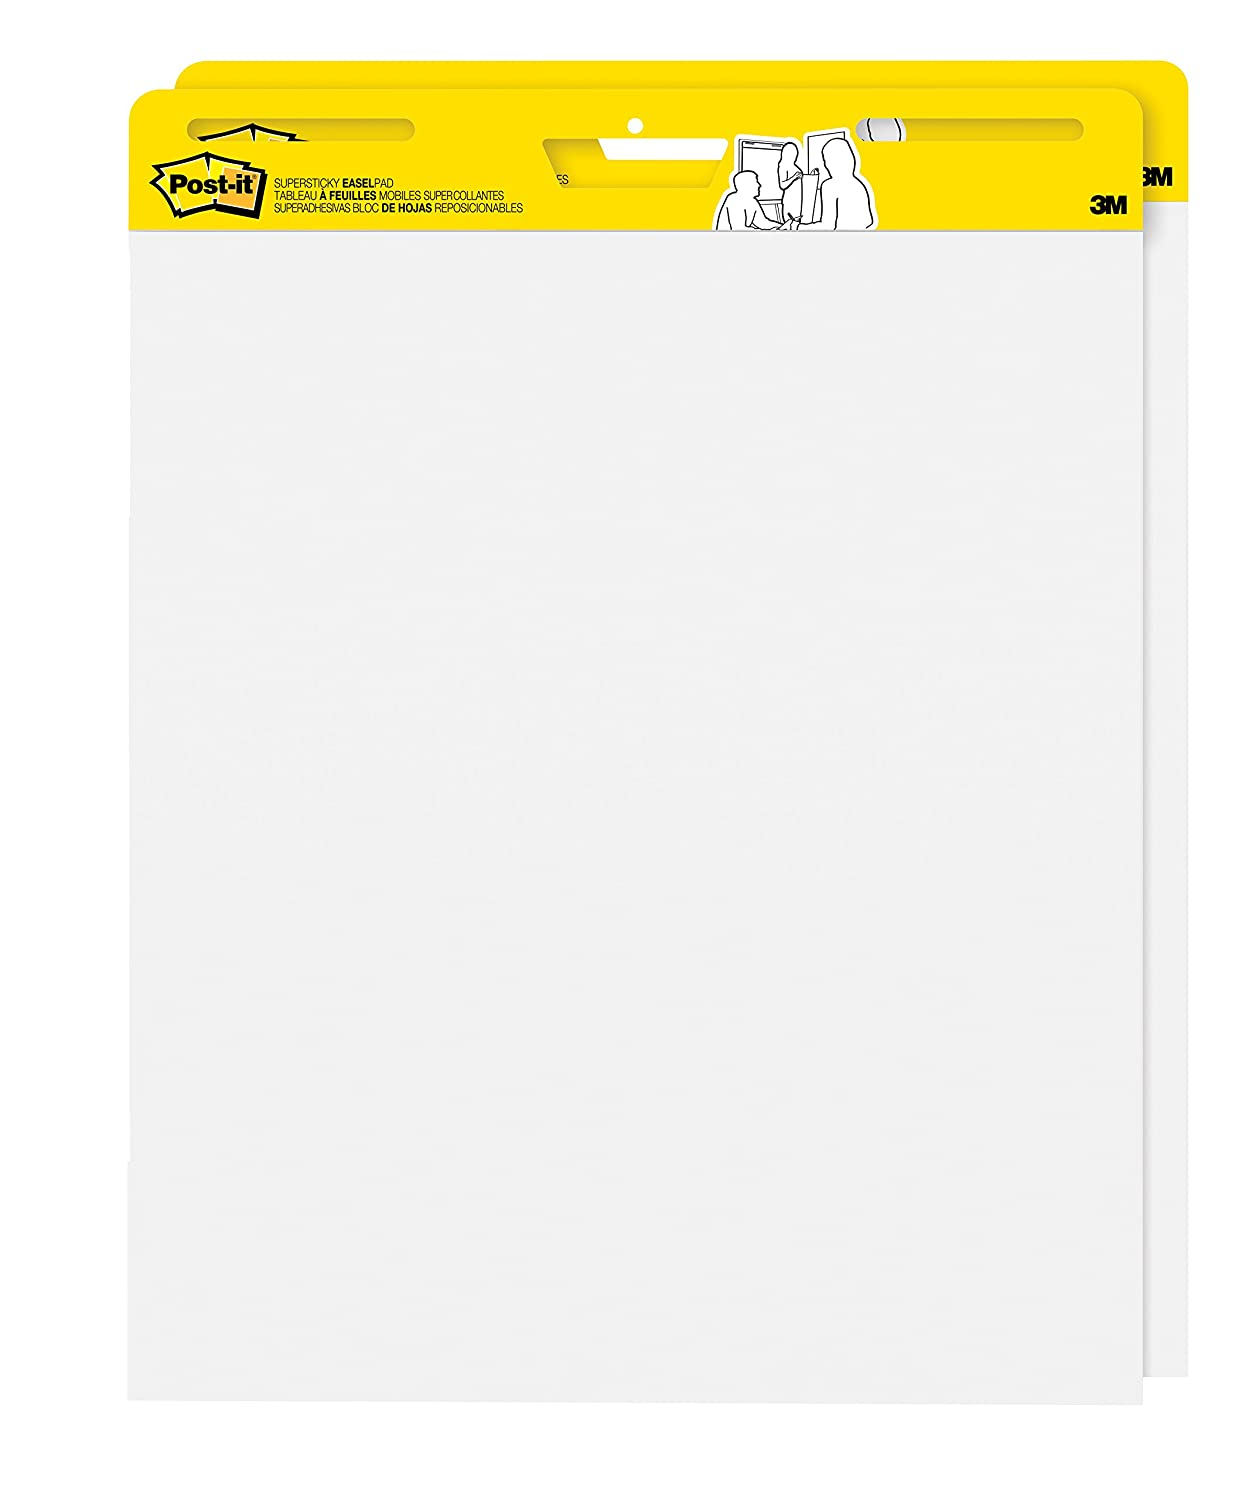 Amazon Postit SelfStick Easel Pad 25 x 305 Inches 30 – Lined Chart Paper